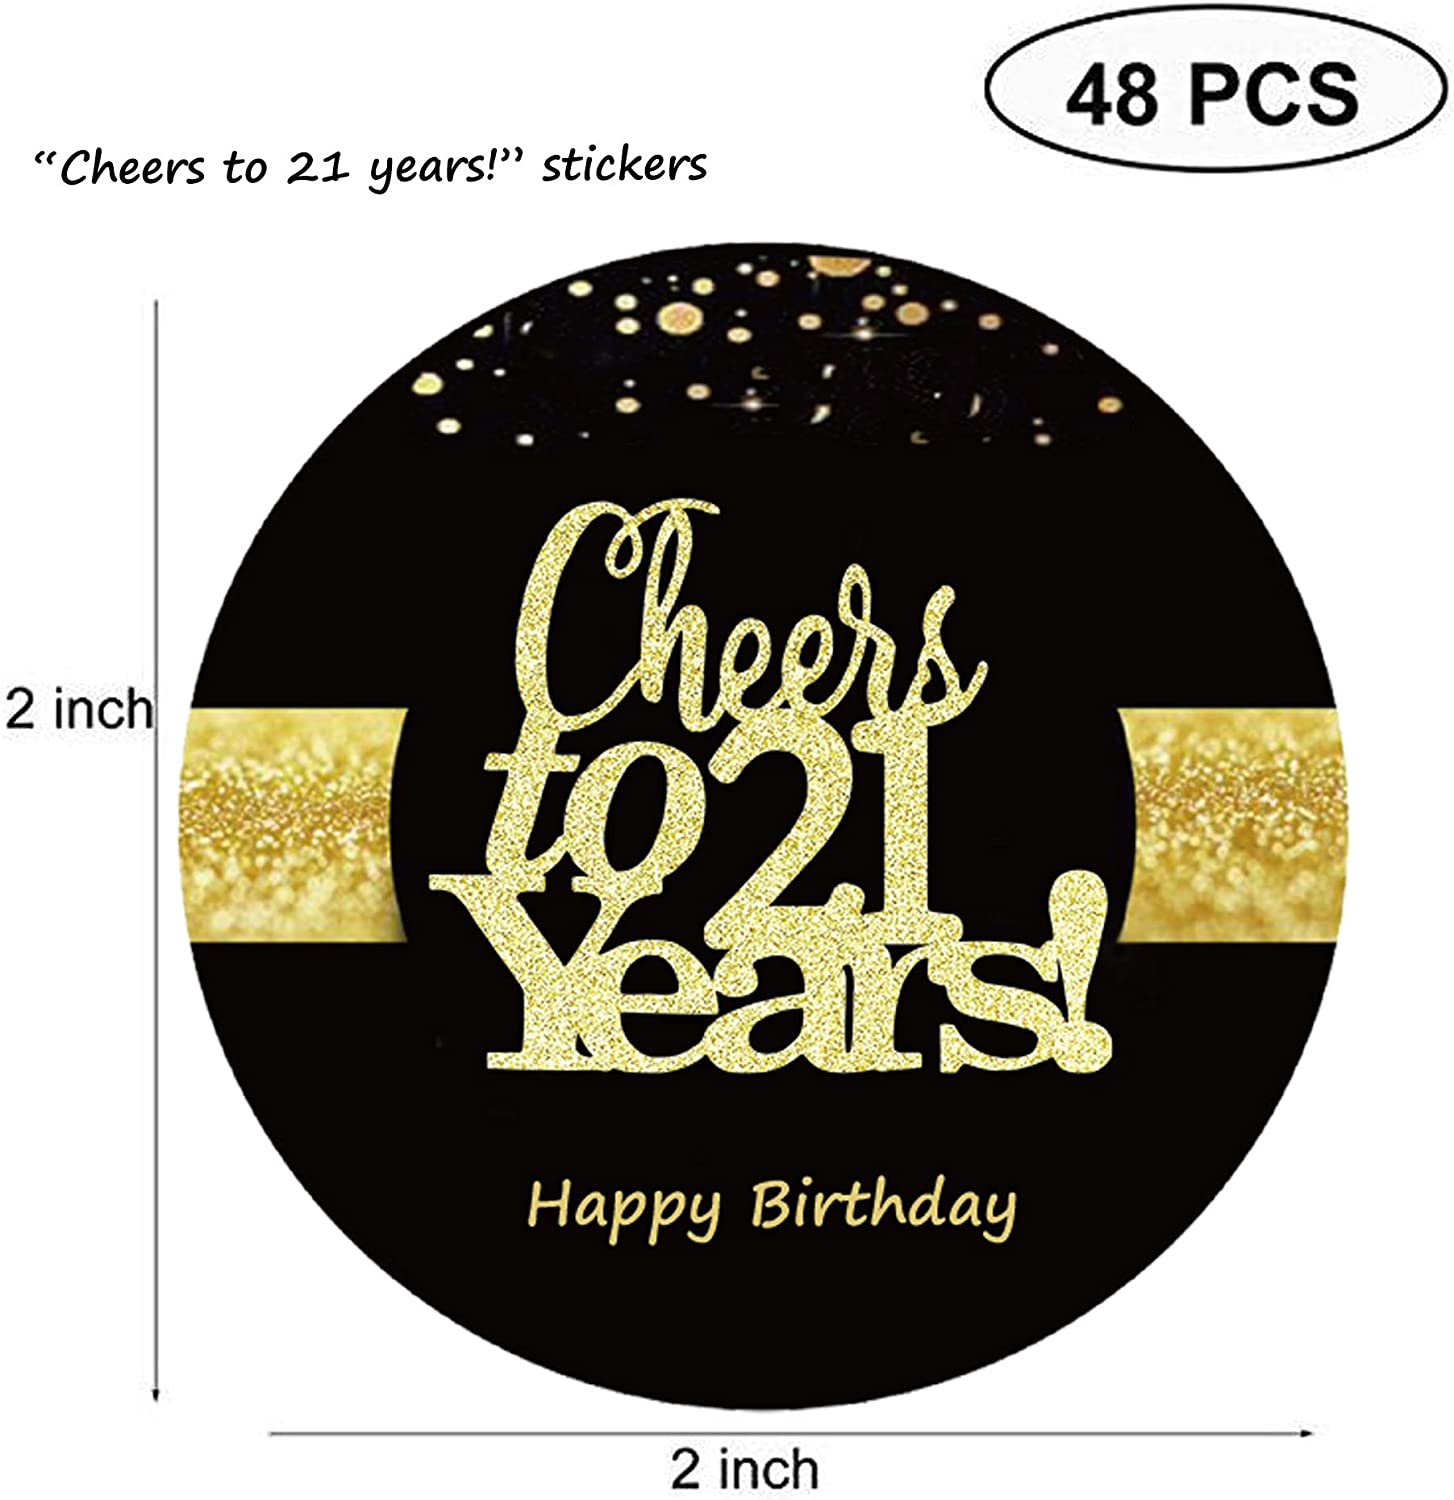 Sumerk 48 PCS Cheers to 21 Years Stickers Large Bottle Stickers 21st Birthday Stickers Card Seals 2 INCHES Round Happy Birthday Party Favors Stickers